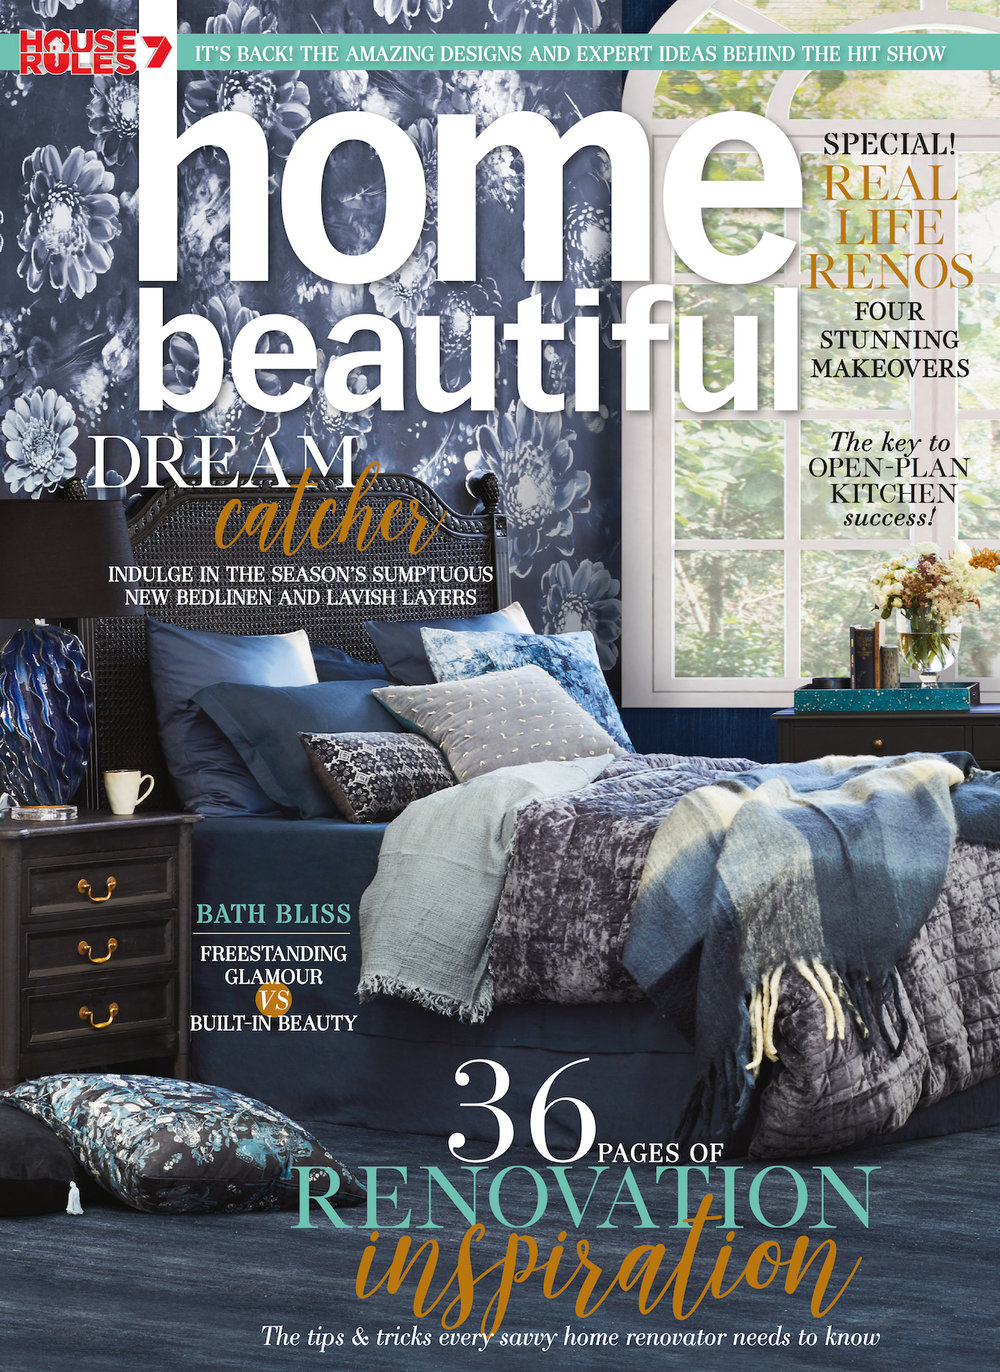 A soulful renovation - styled and written by Heliconia's Sally Paterson